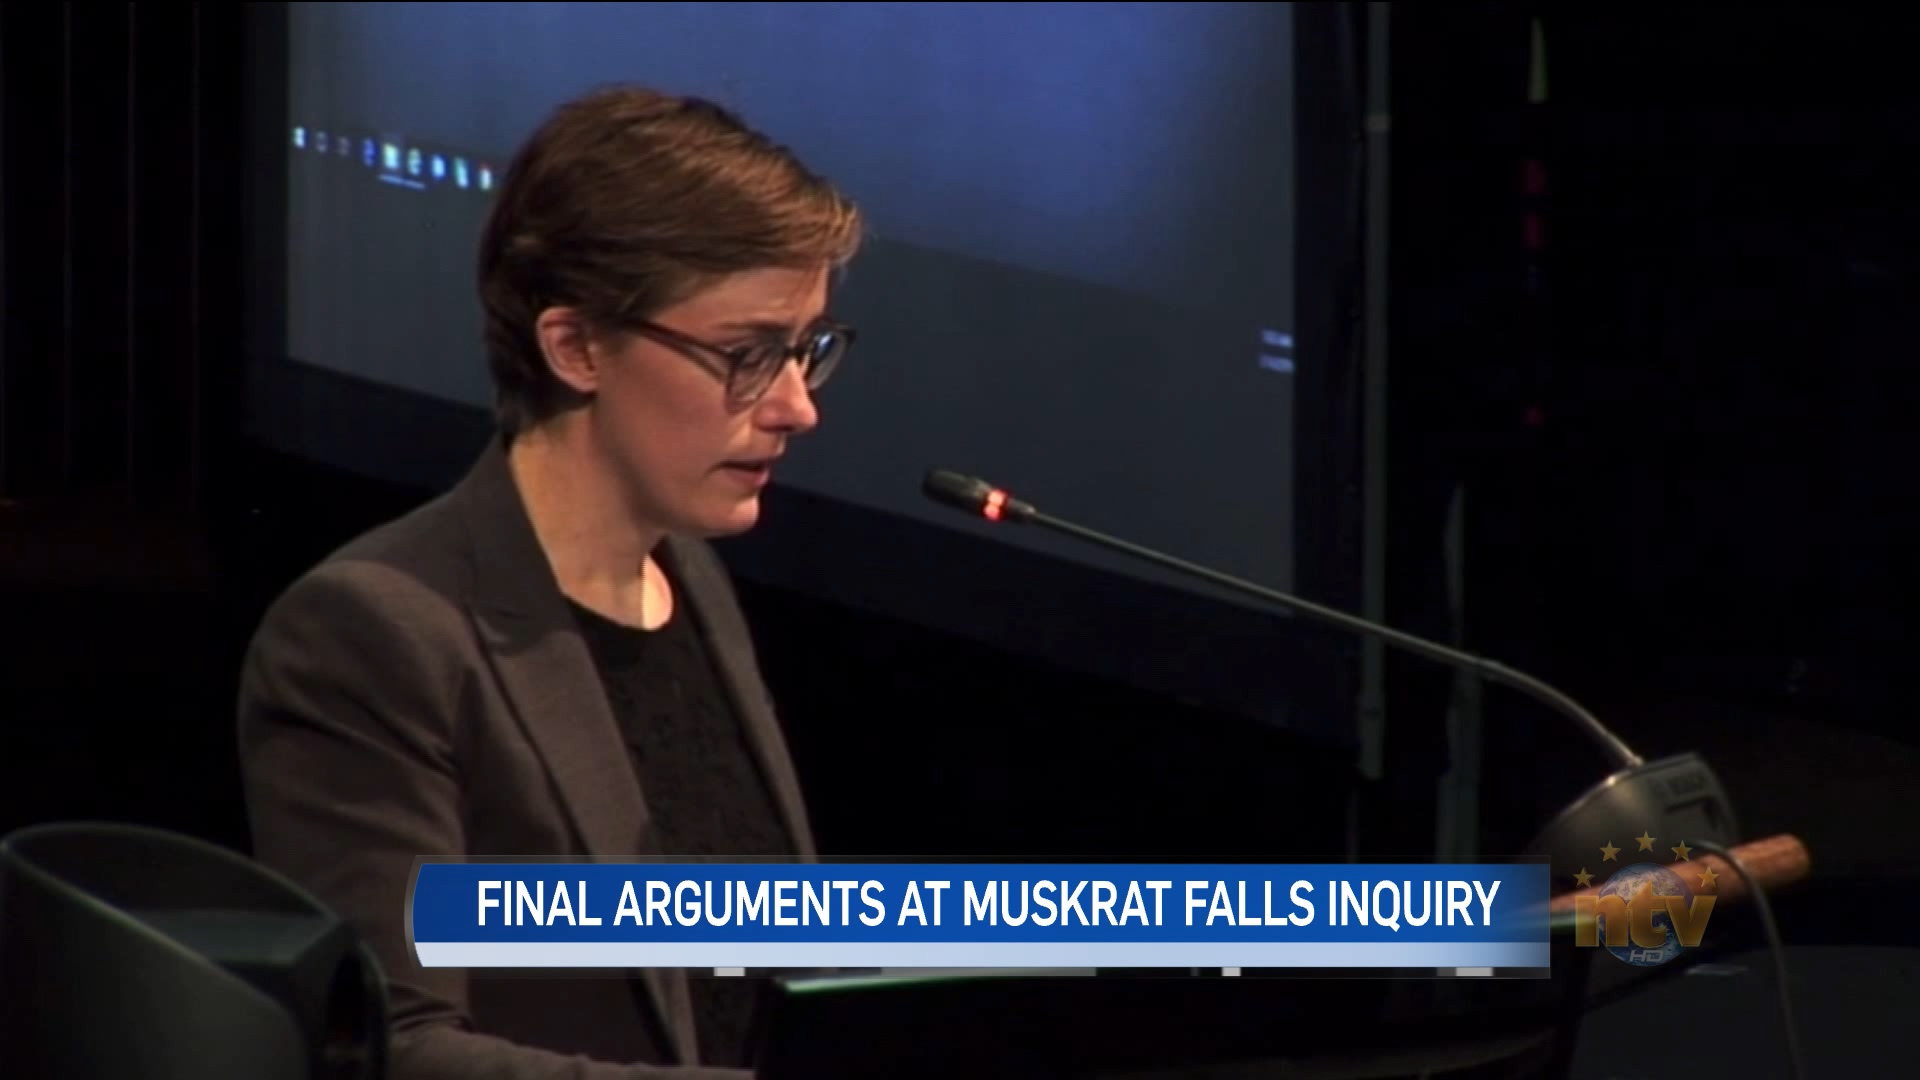 Most Indigenous groups chastise province for poor consultation at Muskrat Falls inquiry - ntv.ca